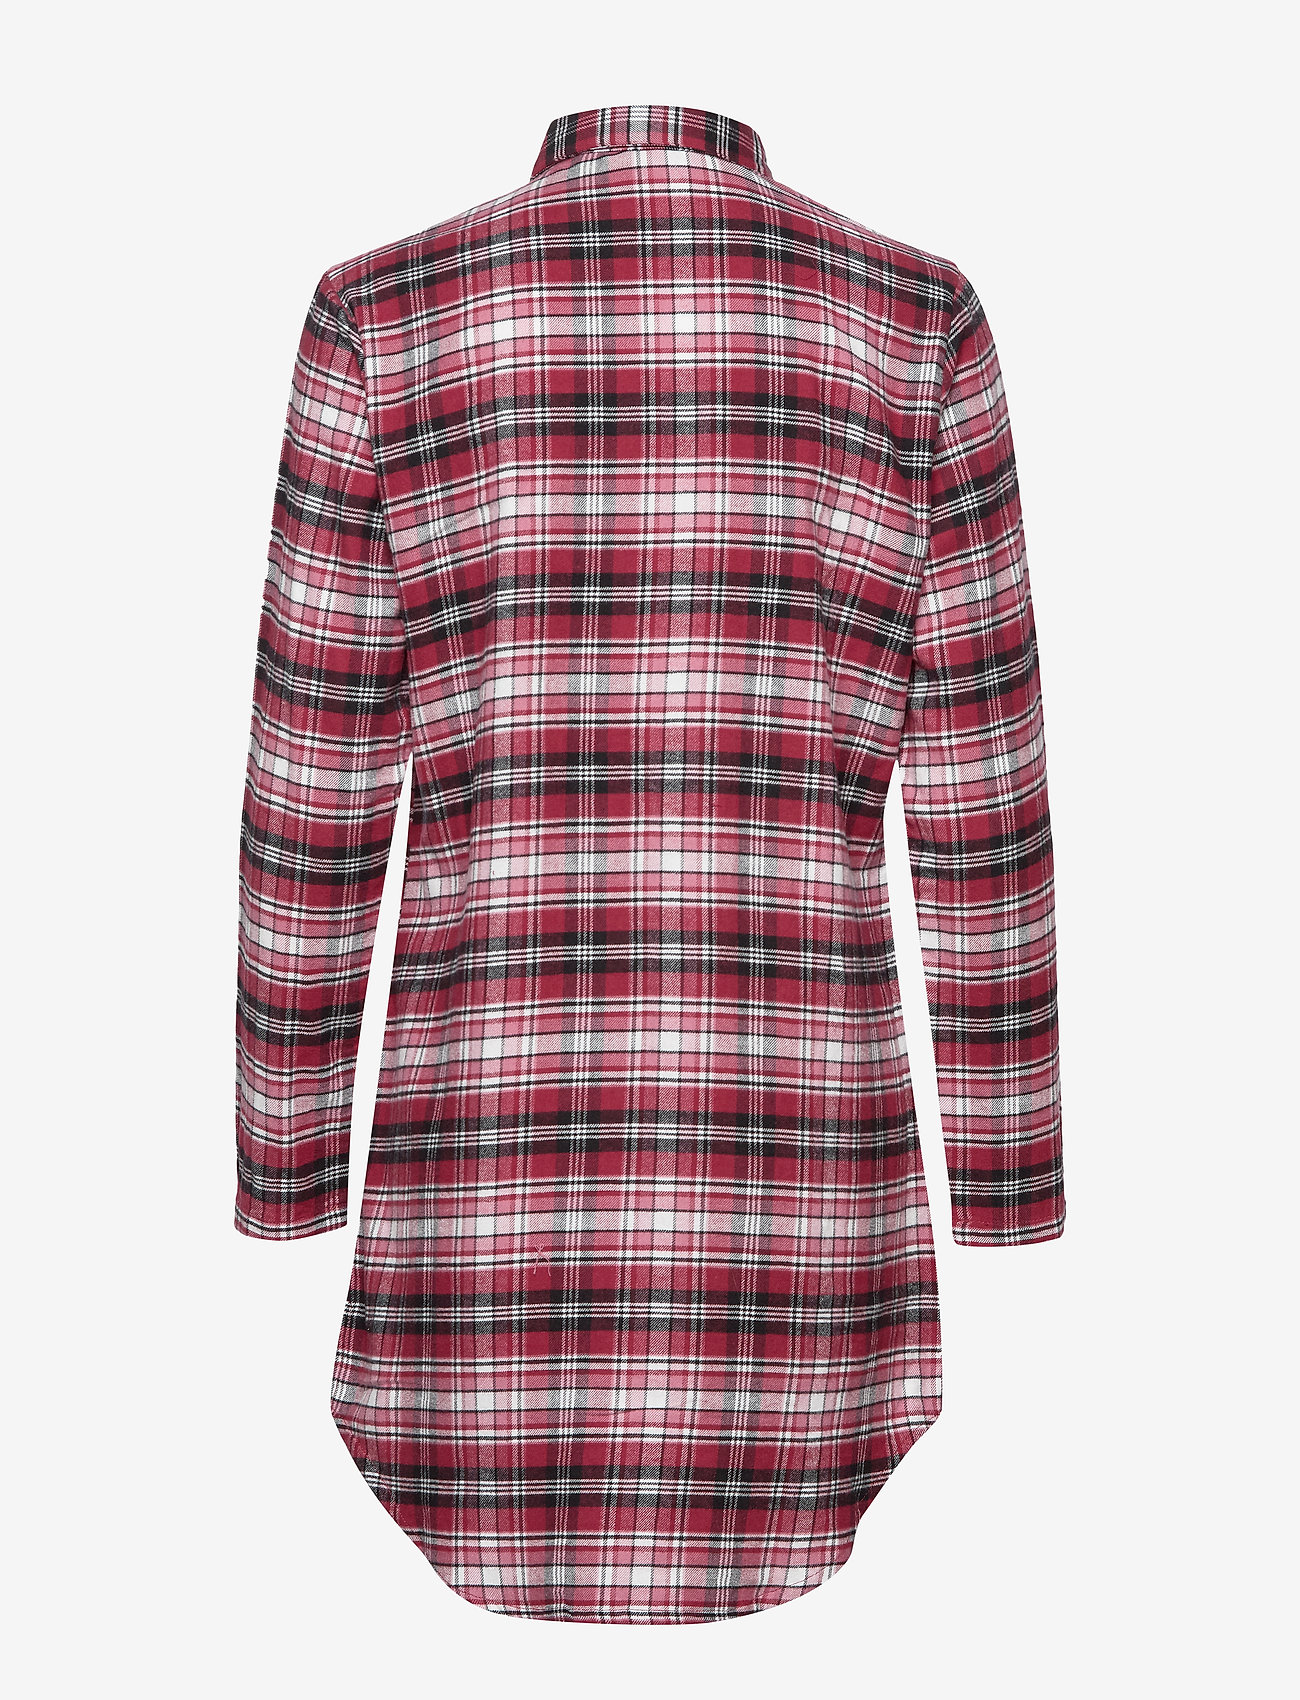 Esprit Bodywear Women - Nightshirts - yöpaidat - dark red